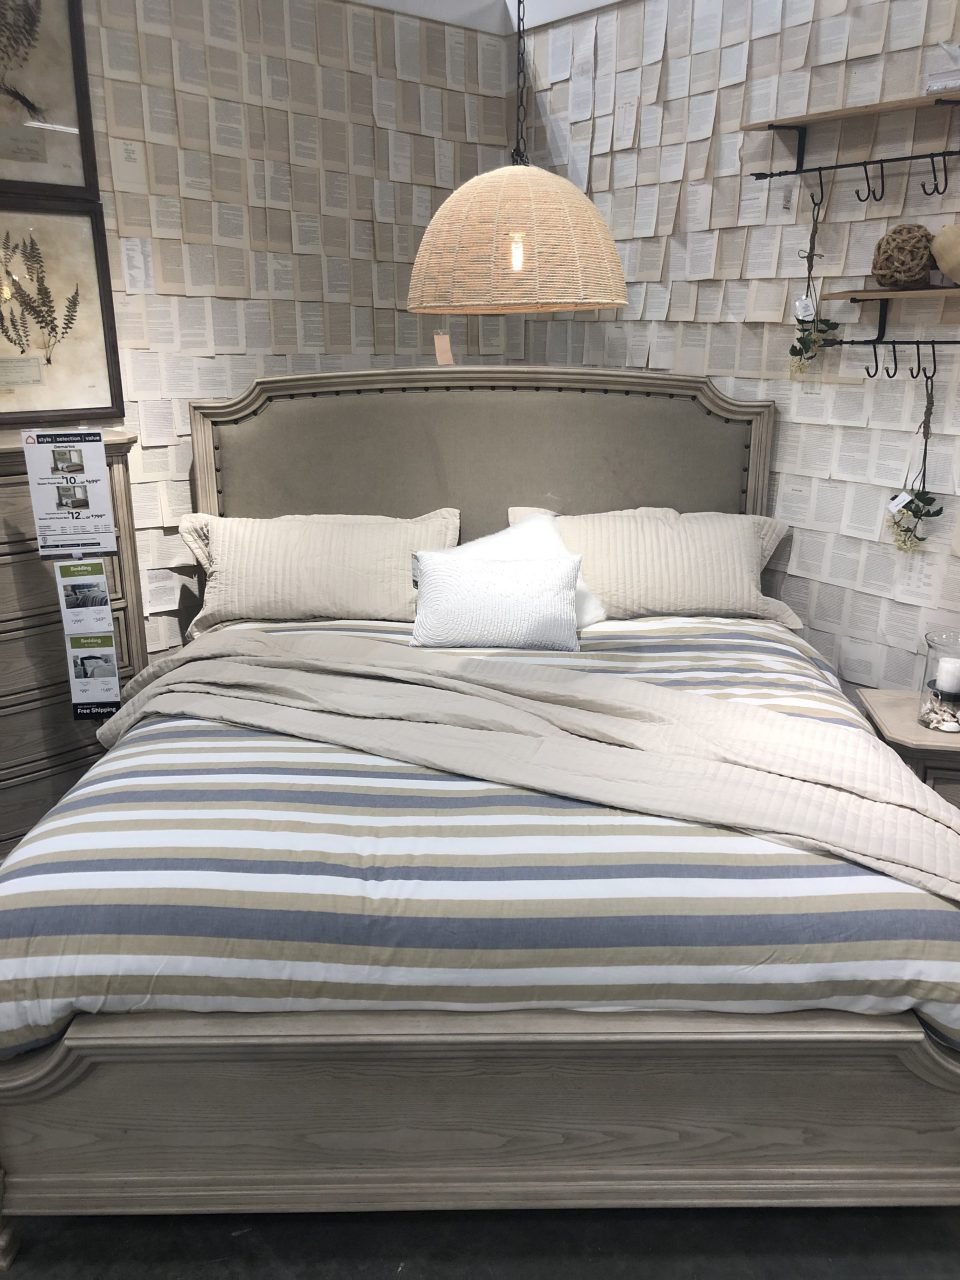 The New Furniture Store In Orlando That You Need To Visit!-Tiffany D. Brown